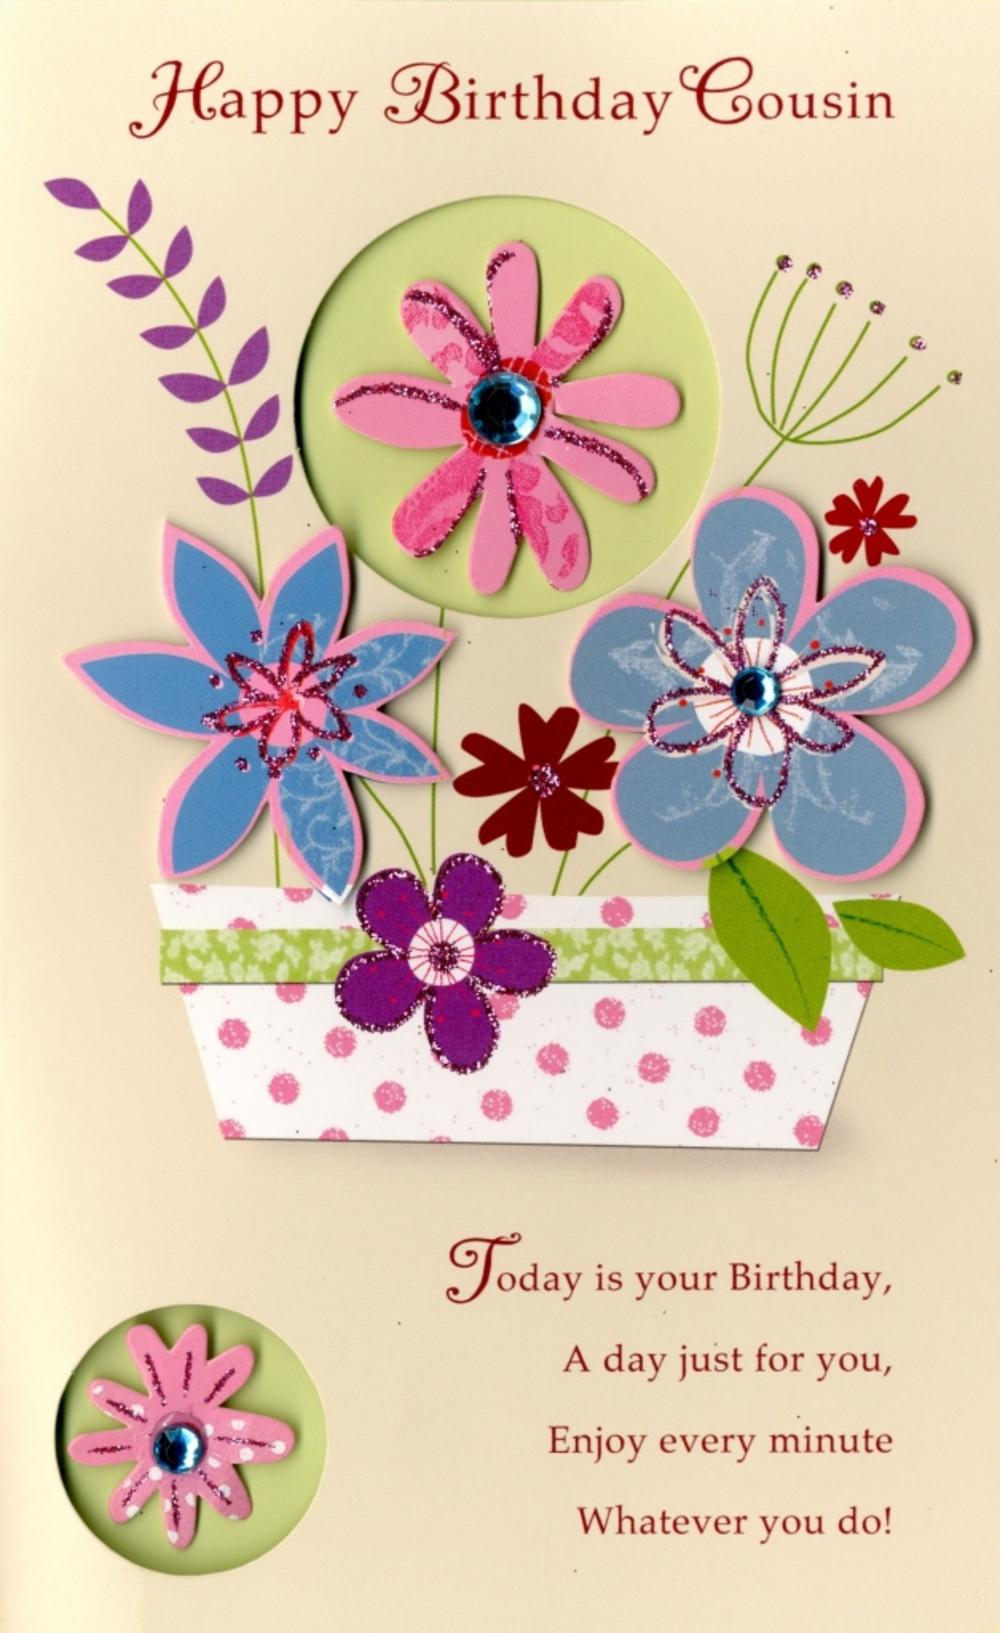 happy birthday cousin images for her ; lrgscalePC201-Birthday-Card